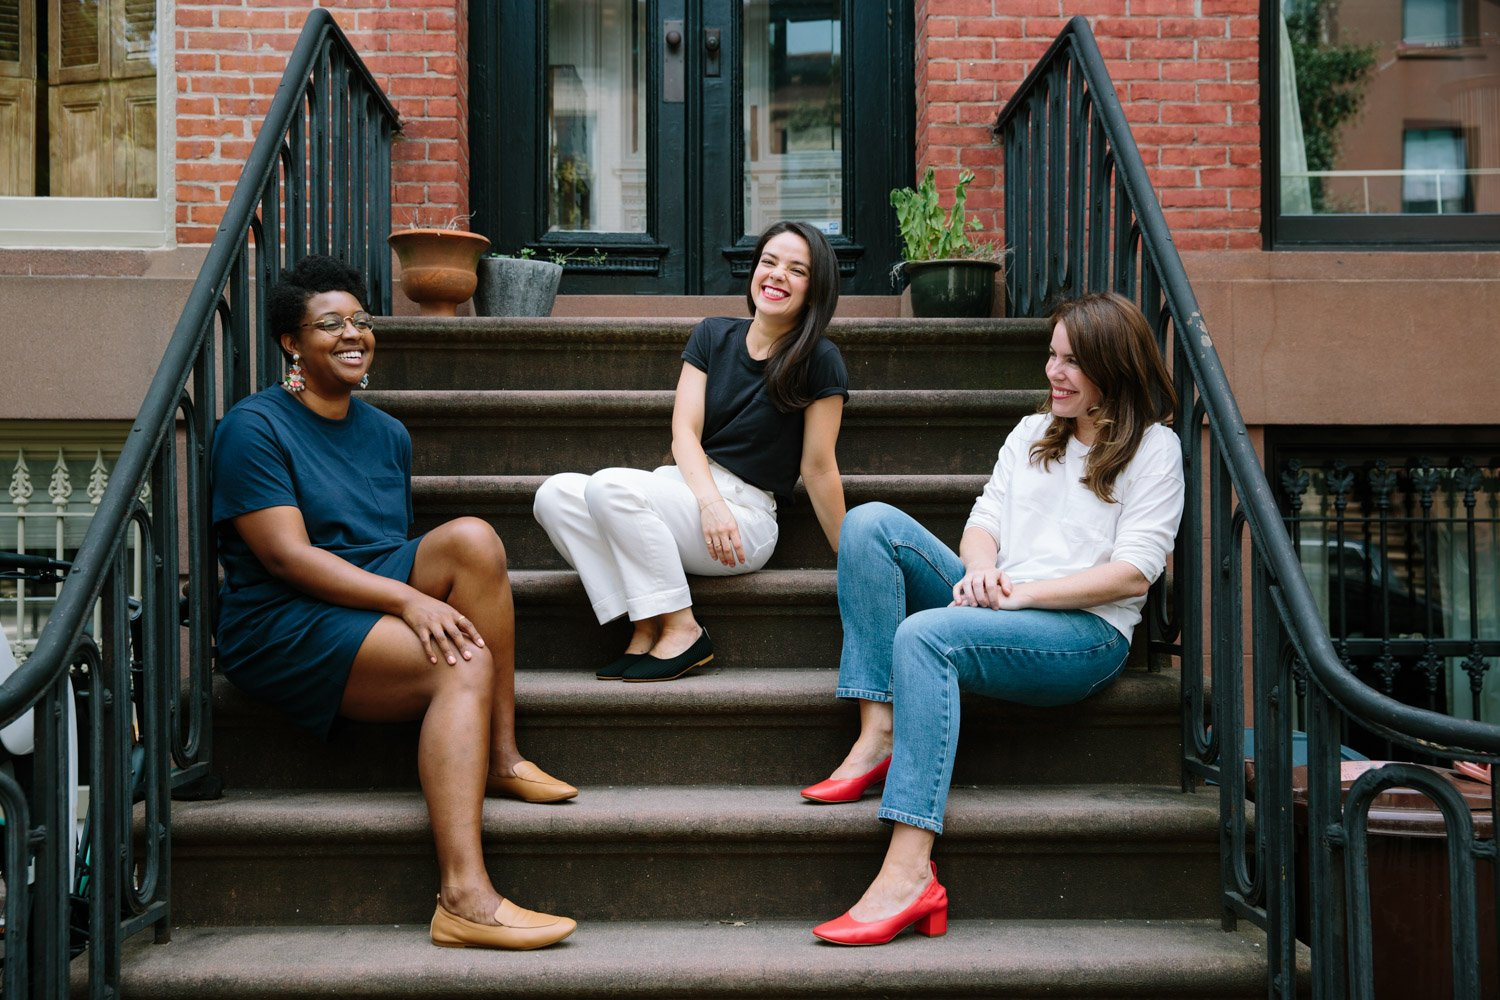 01d9c915dcf4 For years, Everlane has been the clothing brand we reach for over and over  again. From jeans to dresses to shoes, their pieces take us from the office  to ...